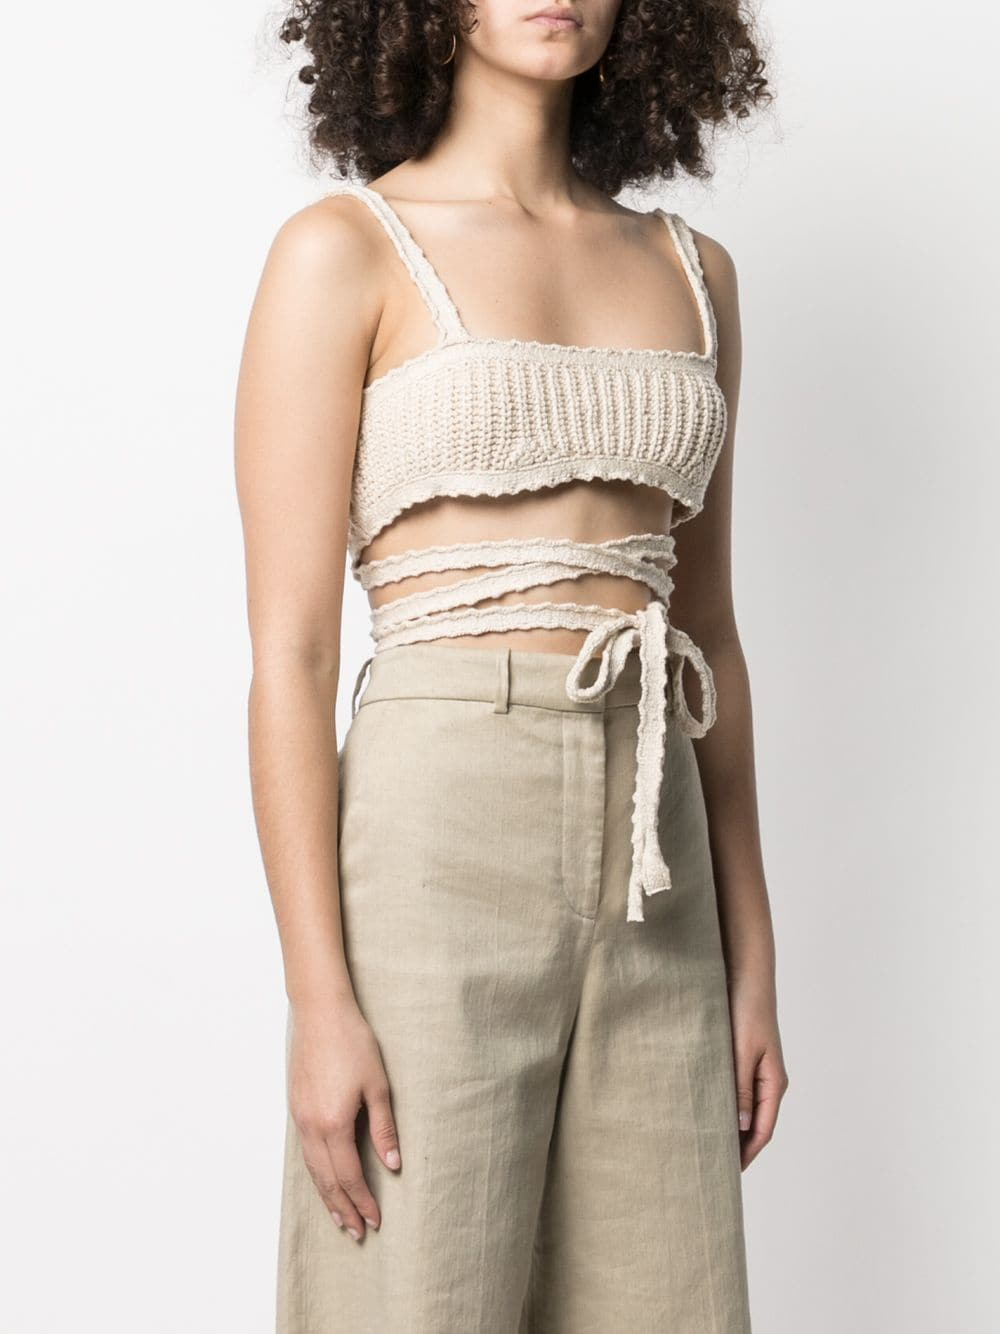 Alanui Cacti Bralette Knitted Top 395лв